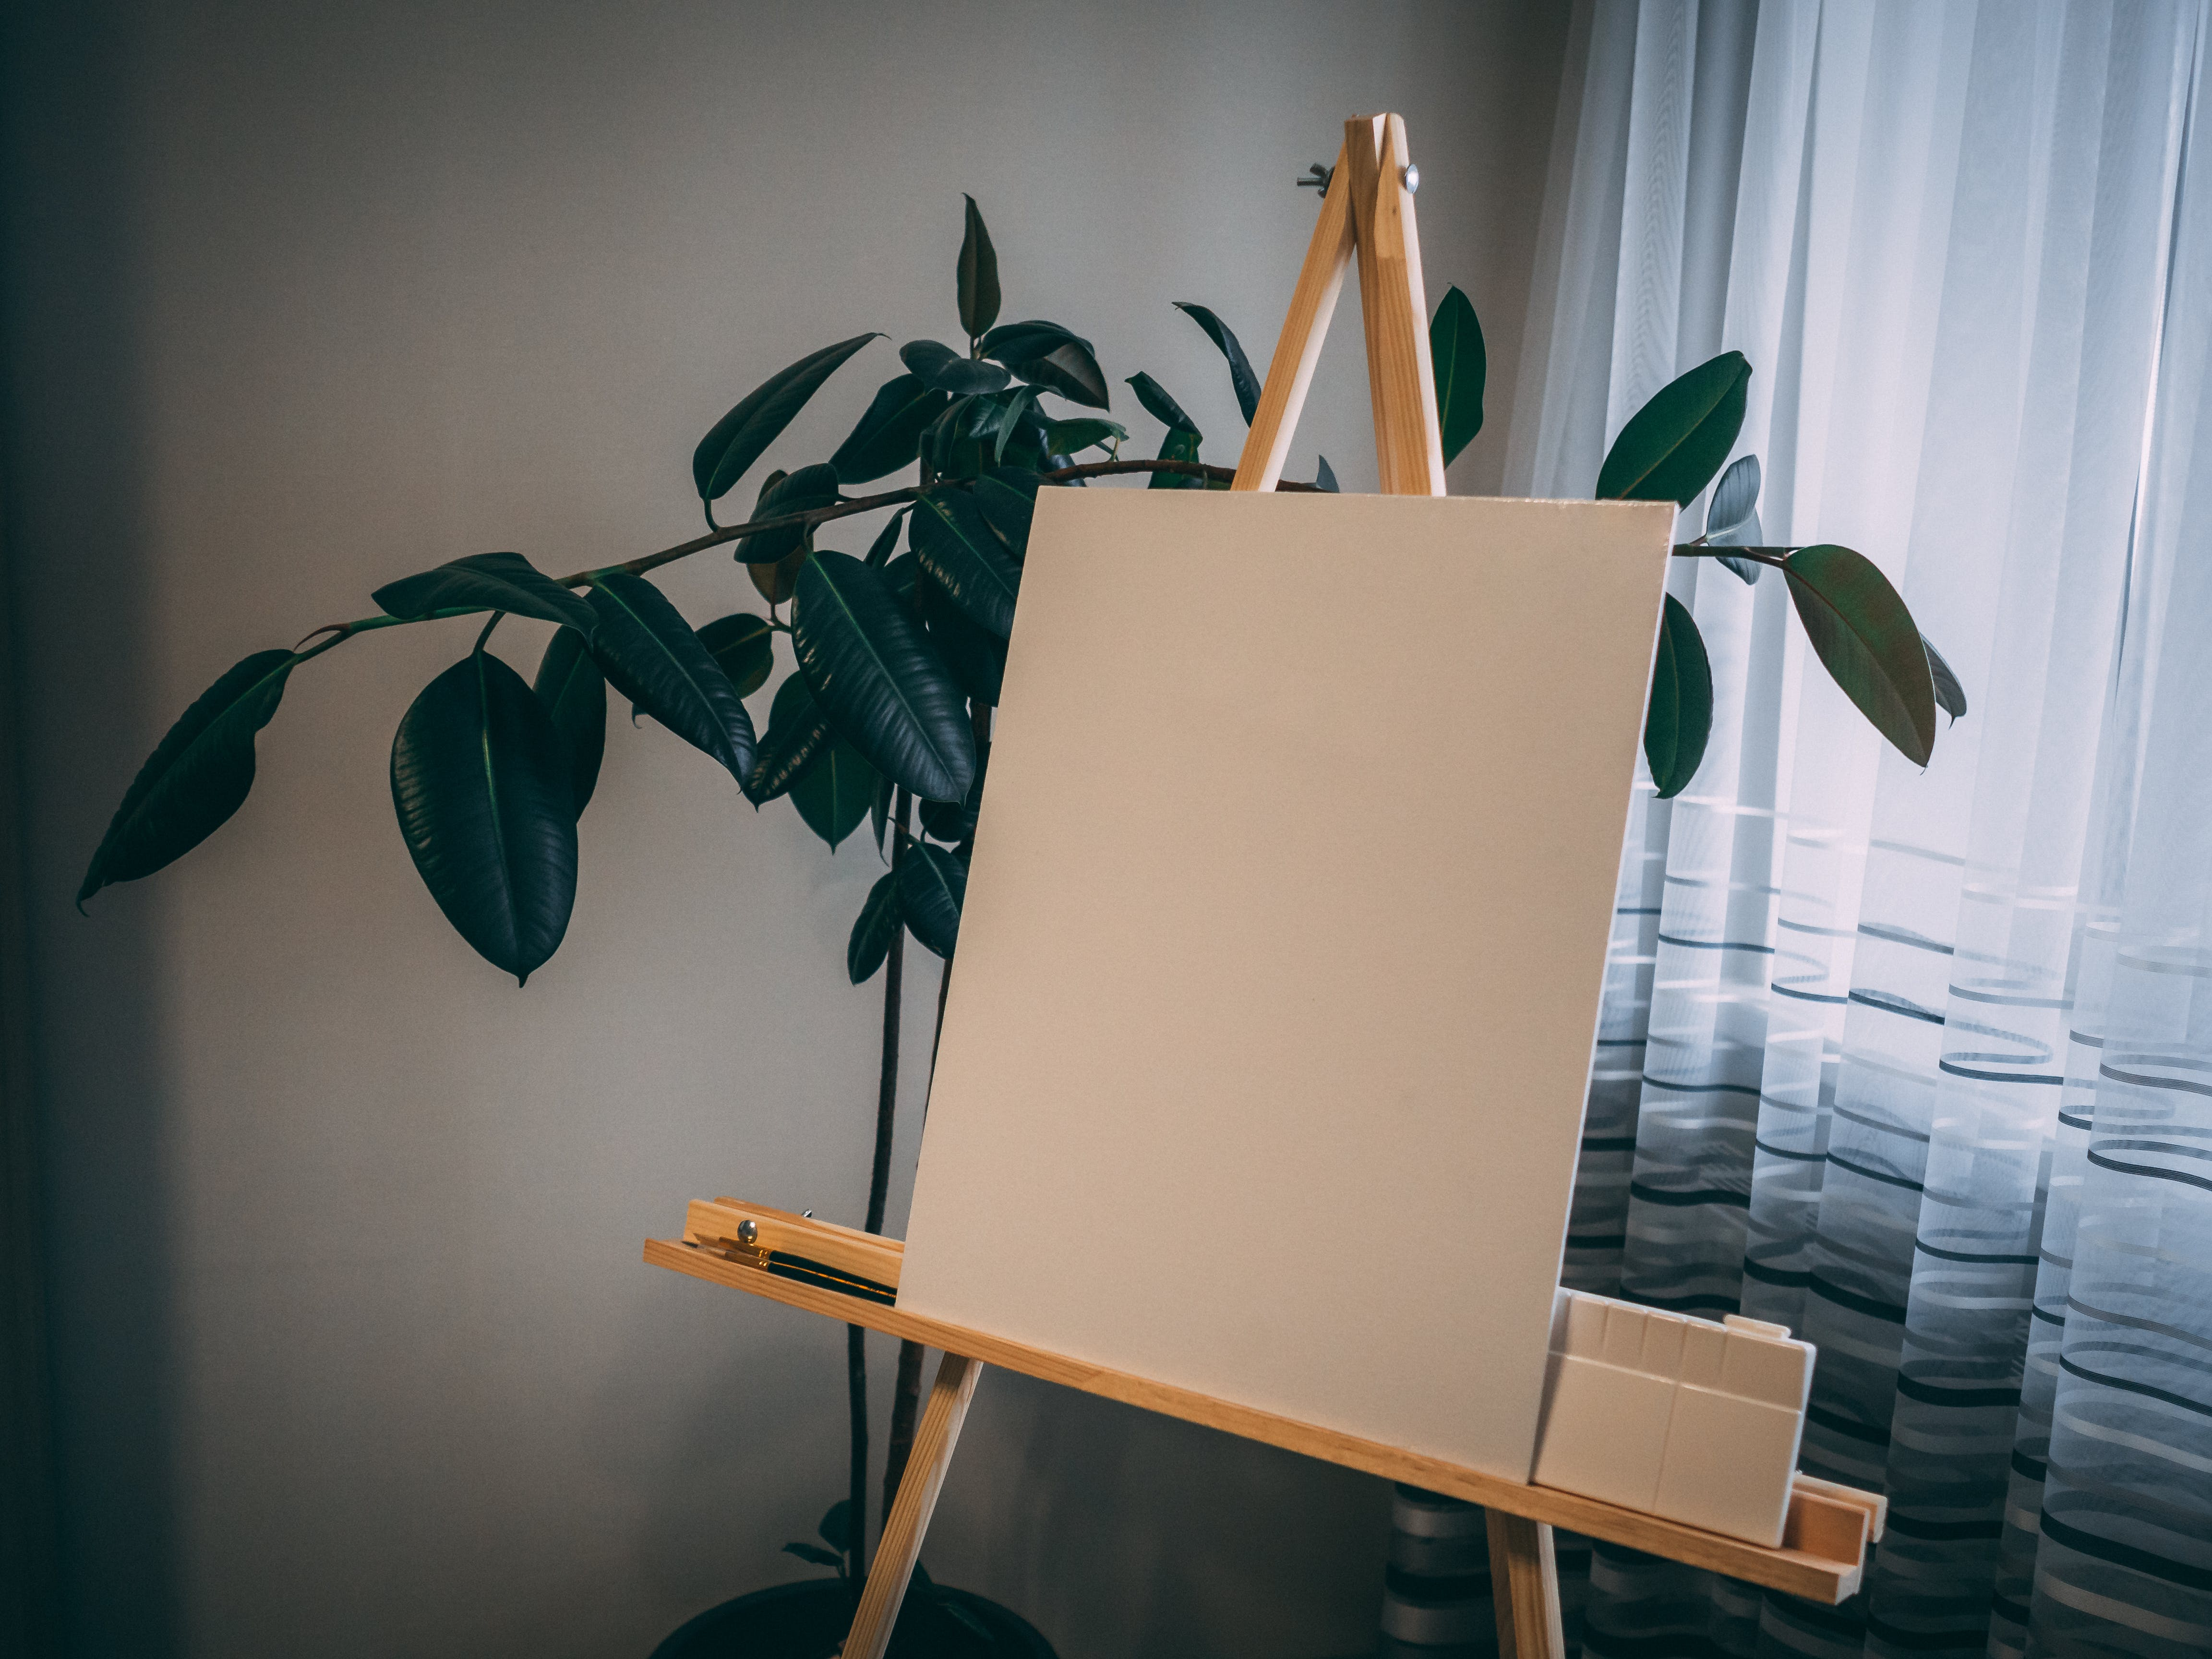 White Board on Easel Beside Green Plant